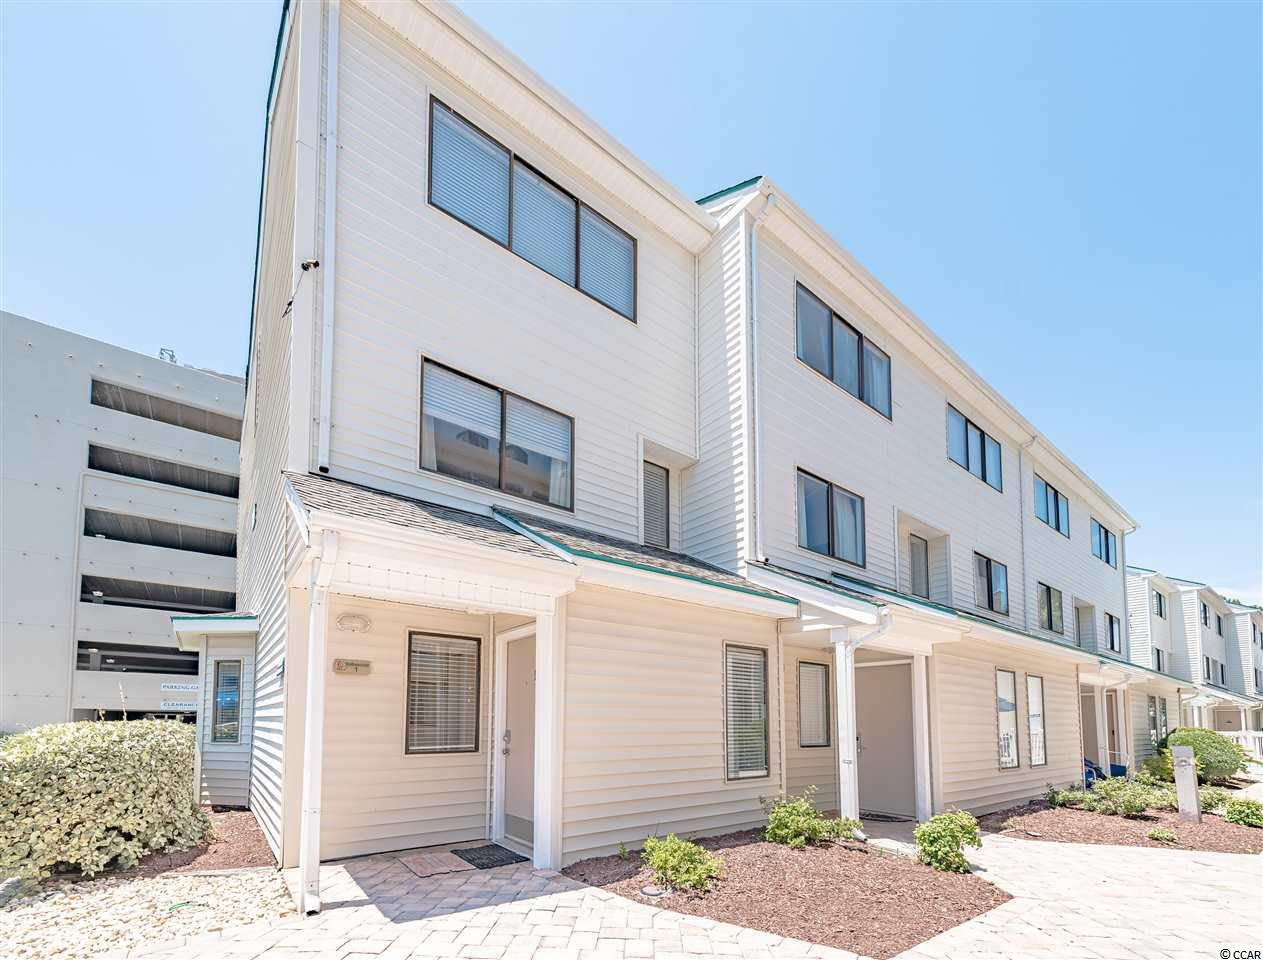 Just steps from the Atlantic Ocean, this 3 bedroom 2.5 bathroom townhome is equipped with everything you'll need for a place at the beach! All you need is your suitcase!   All measurements are approximate and should be verified by the buyer.